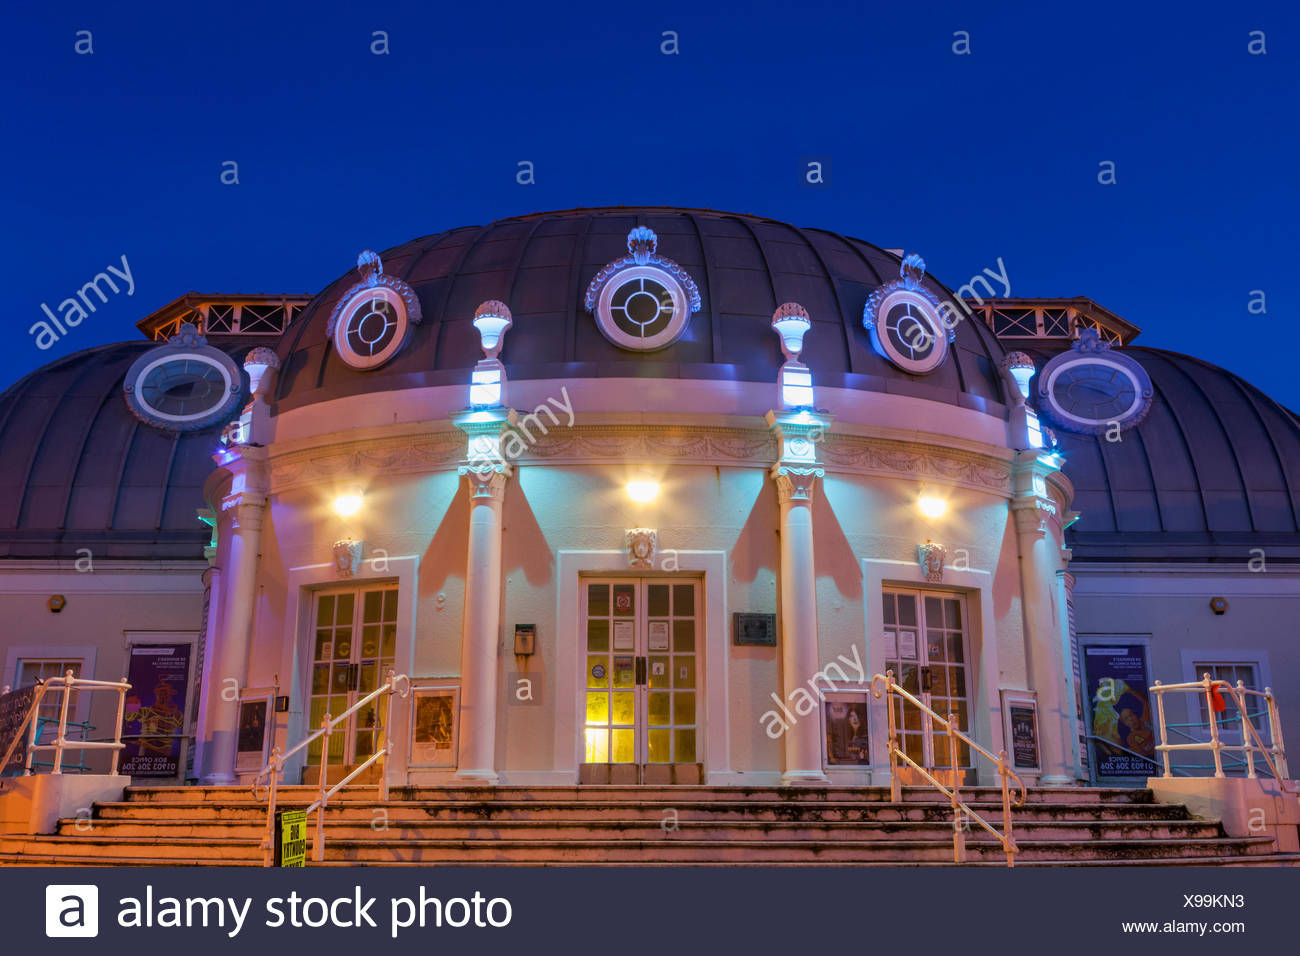 England, West Sussex, Worthing, The Pier Theatre - Stock Image